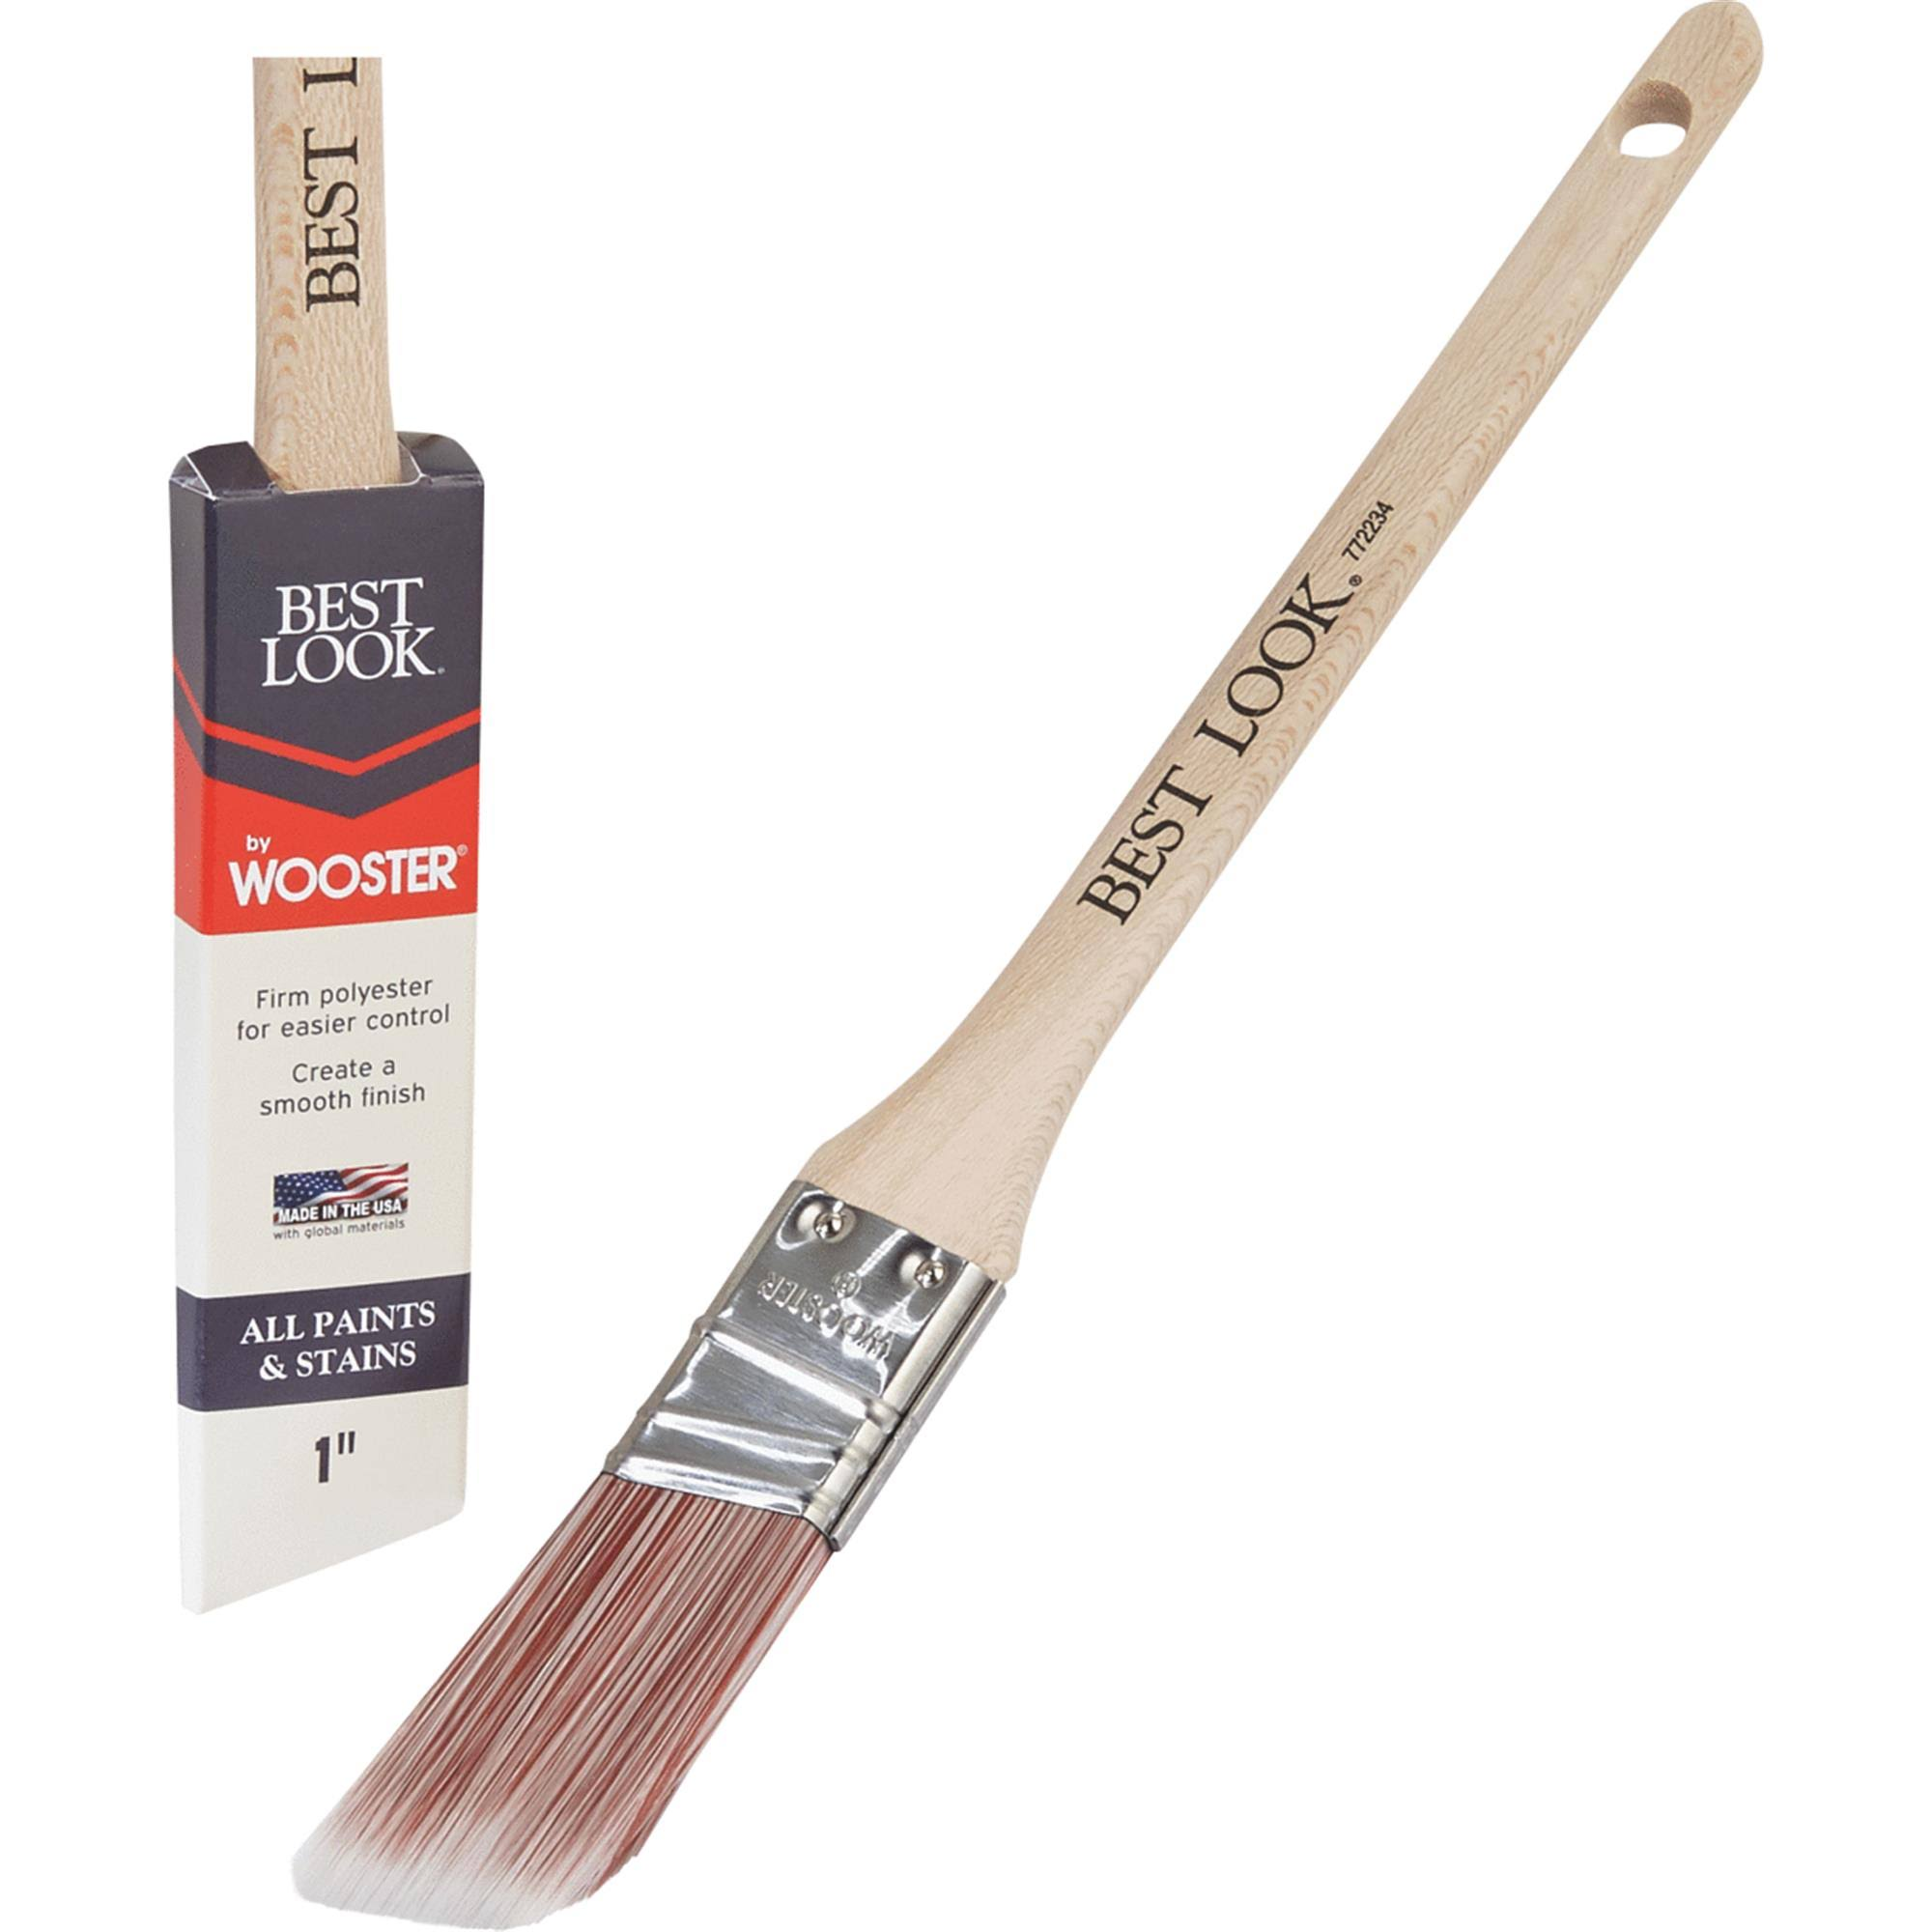 Best Look by Wooster Polyester Paint Brush - D4021-1